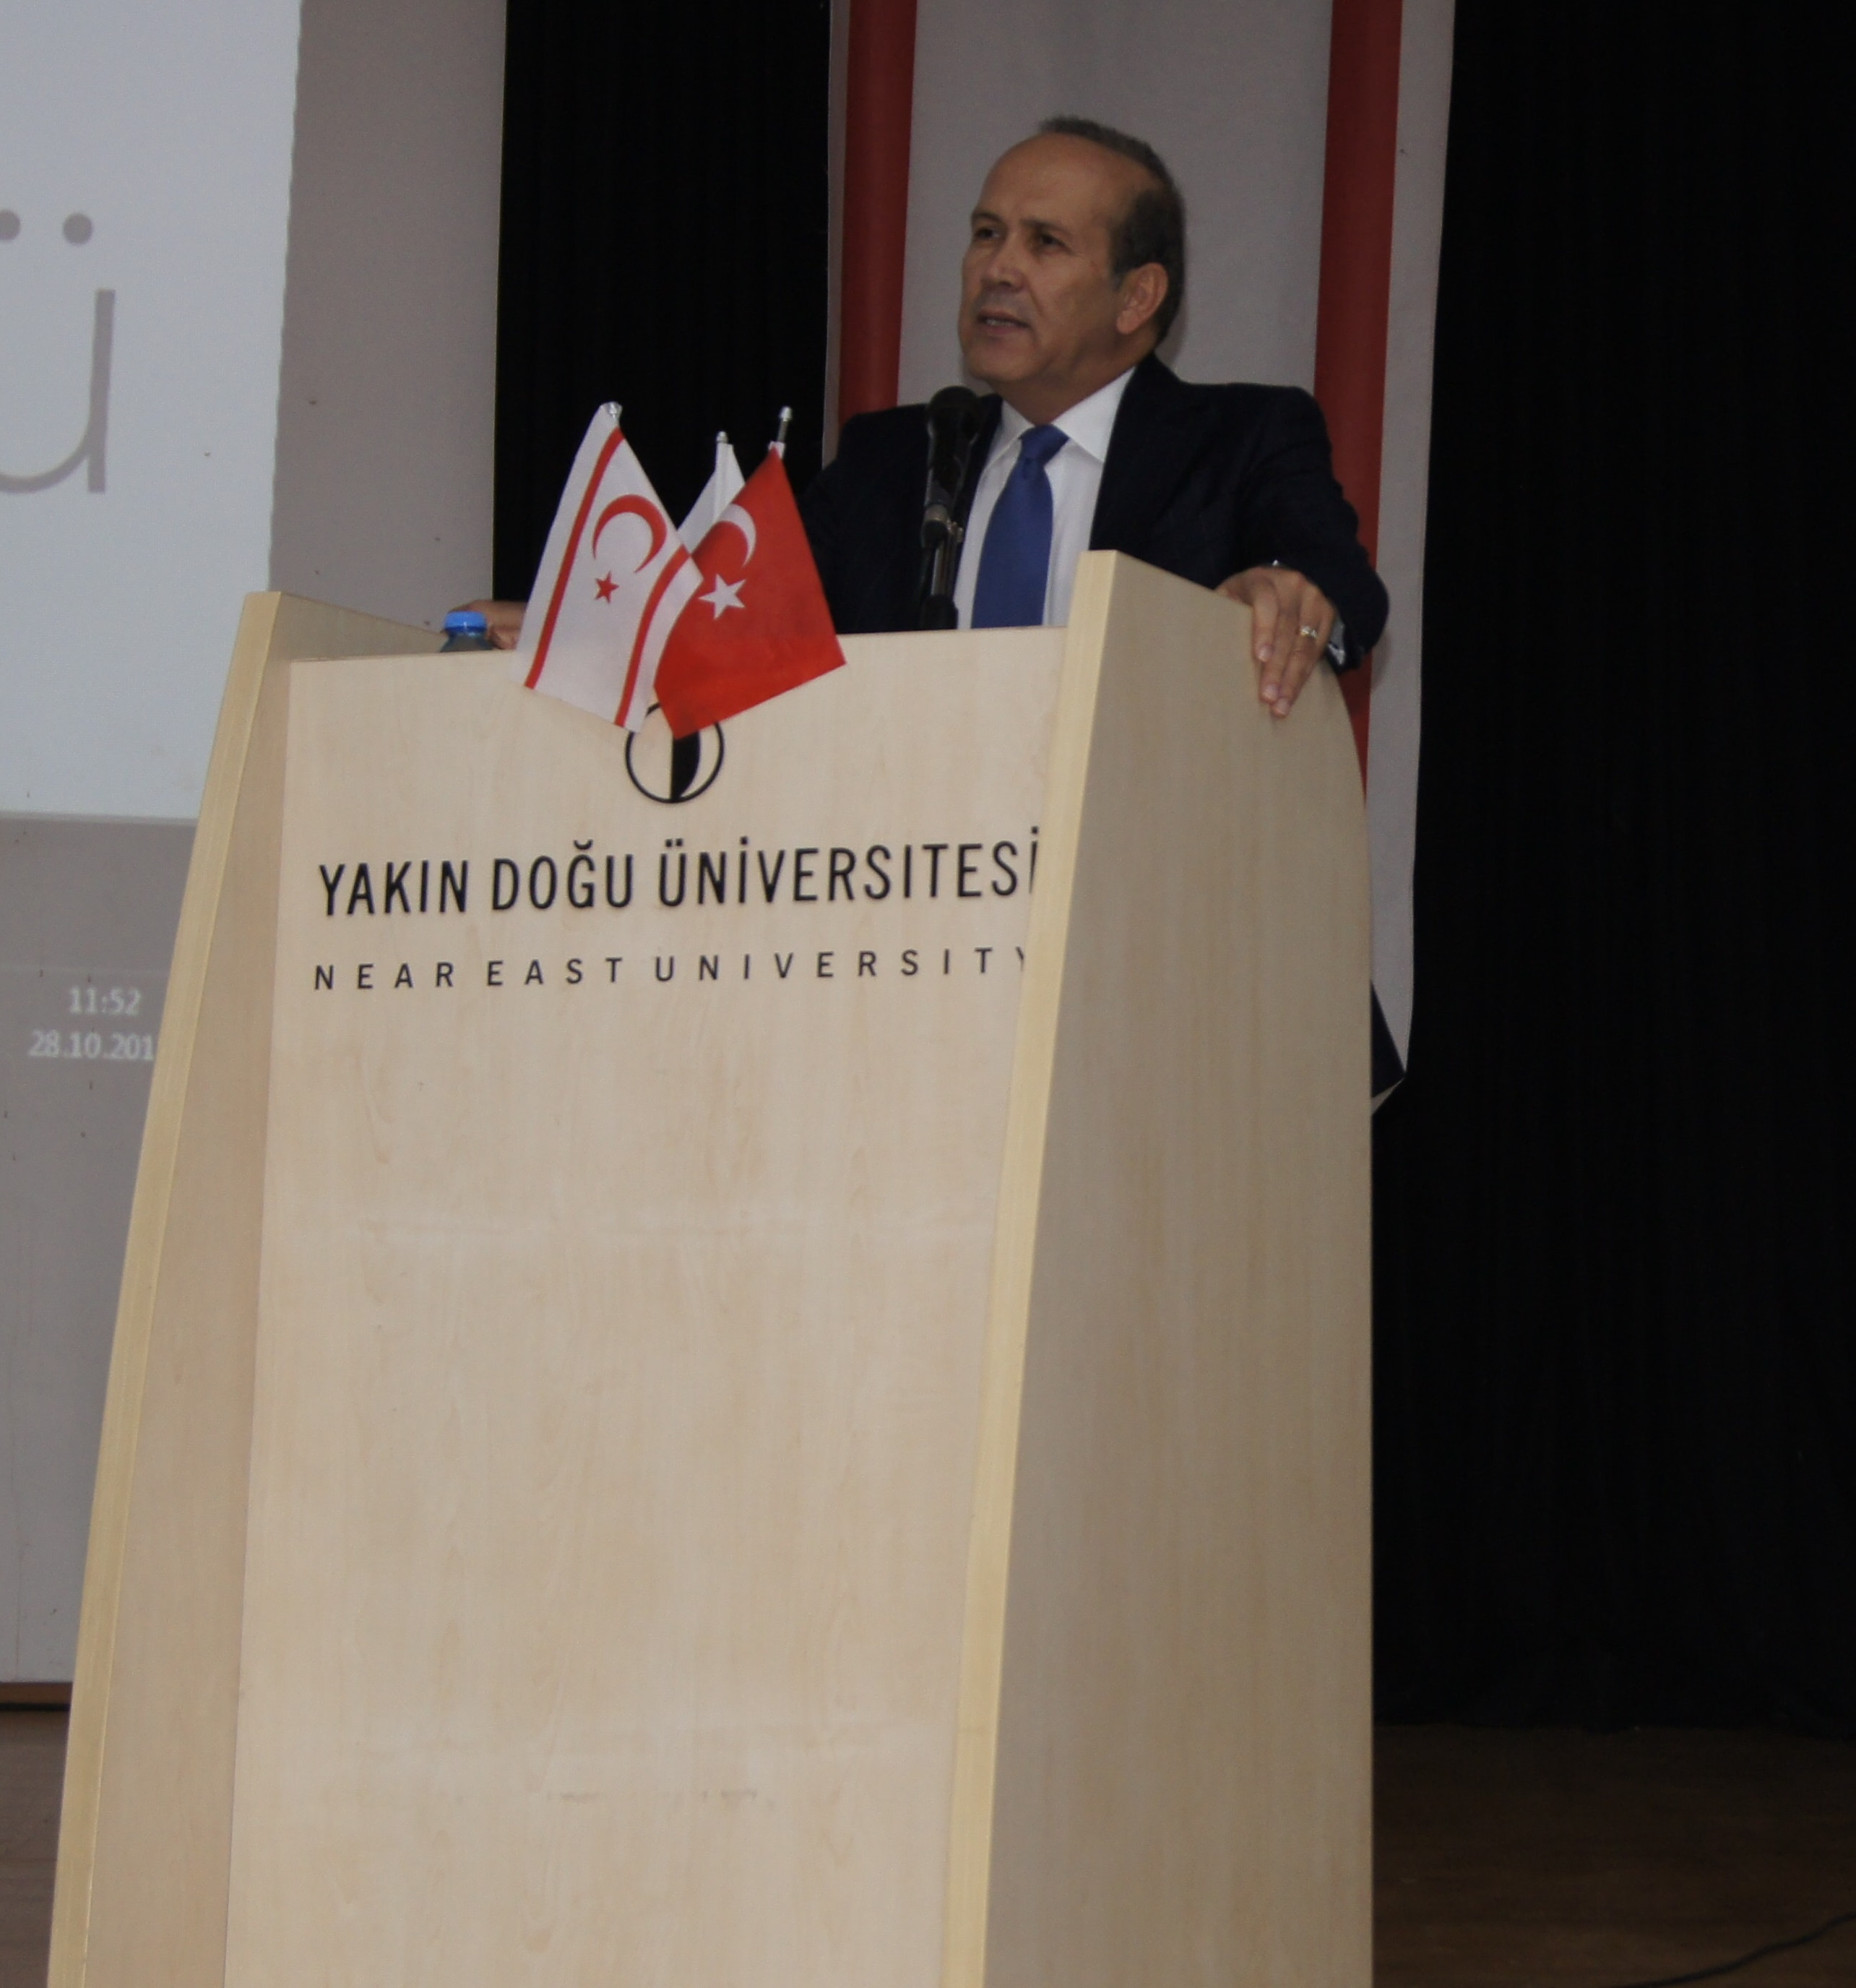 Participating in the Security Academy Certificate Program organized by the Near East University Near East Institute, Mr. Namık TAN addressed the crisis encountered in Turkey-USA relations and its impact on TRNC